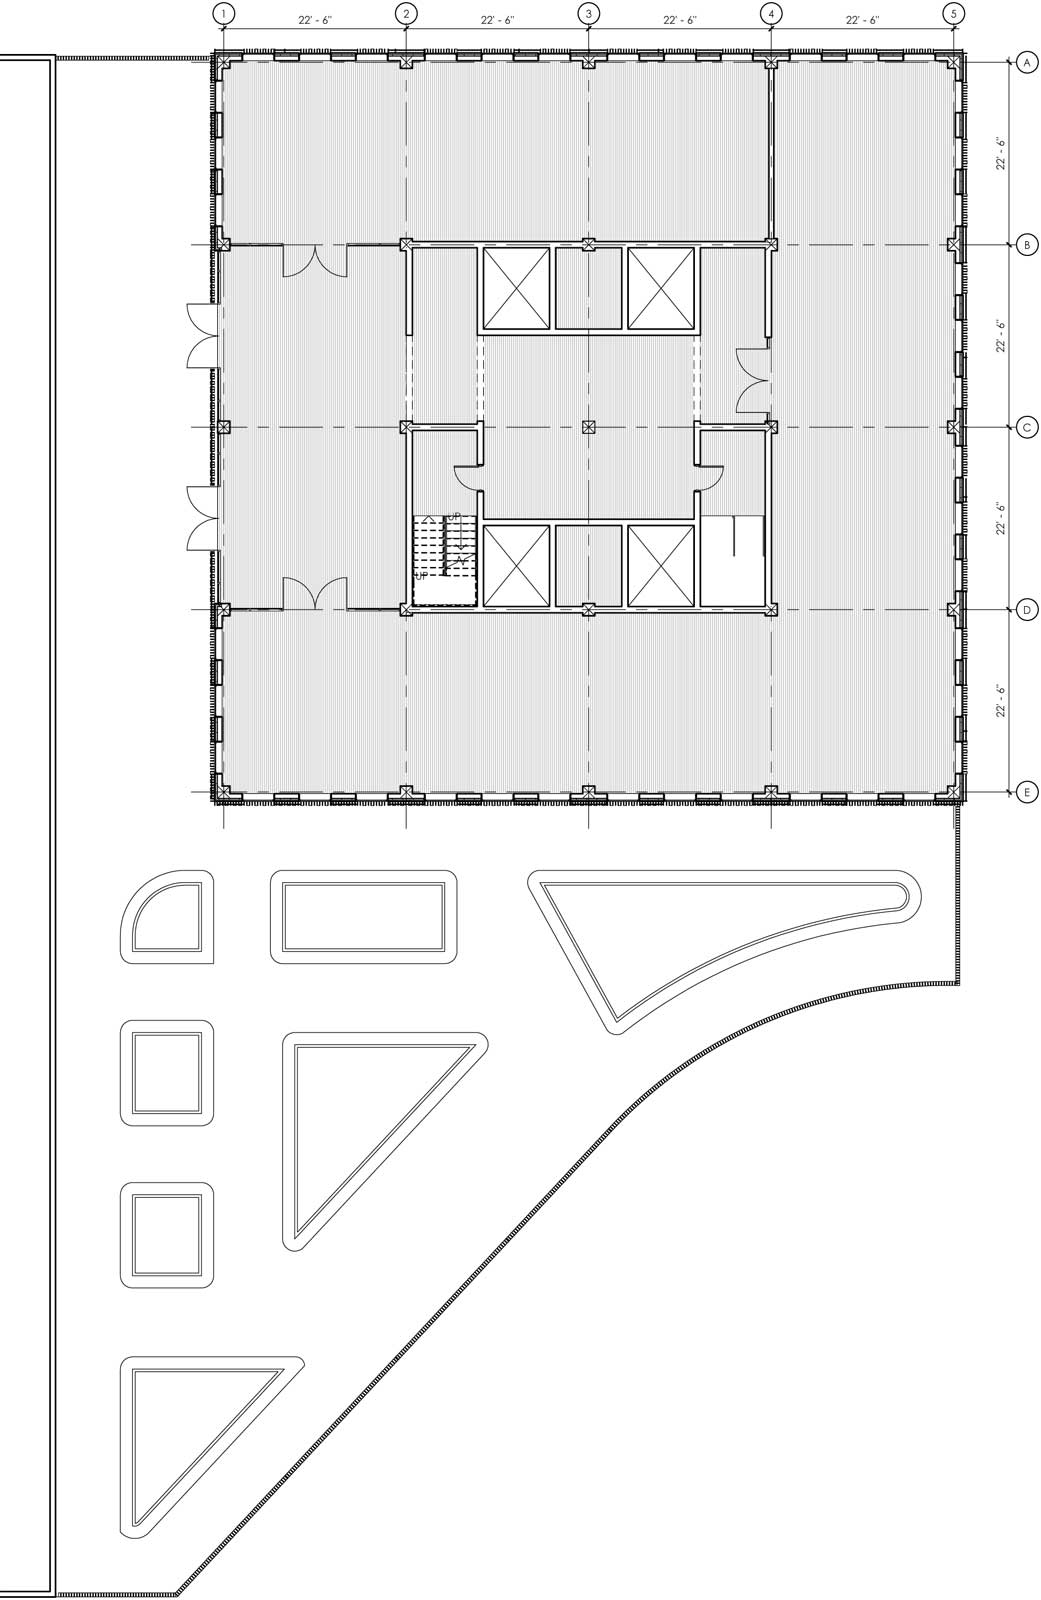 NYC-Timber-Residential-Skyscraper-2nd-Floor-Plan.jpg